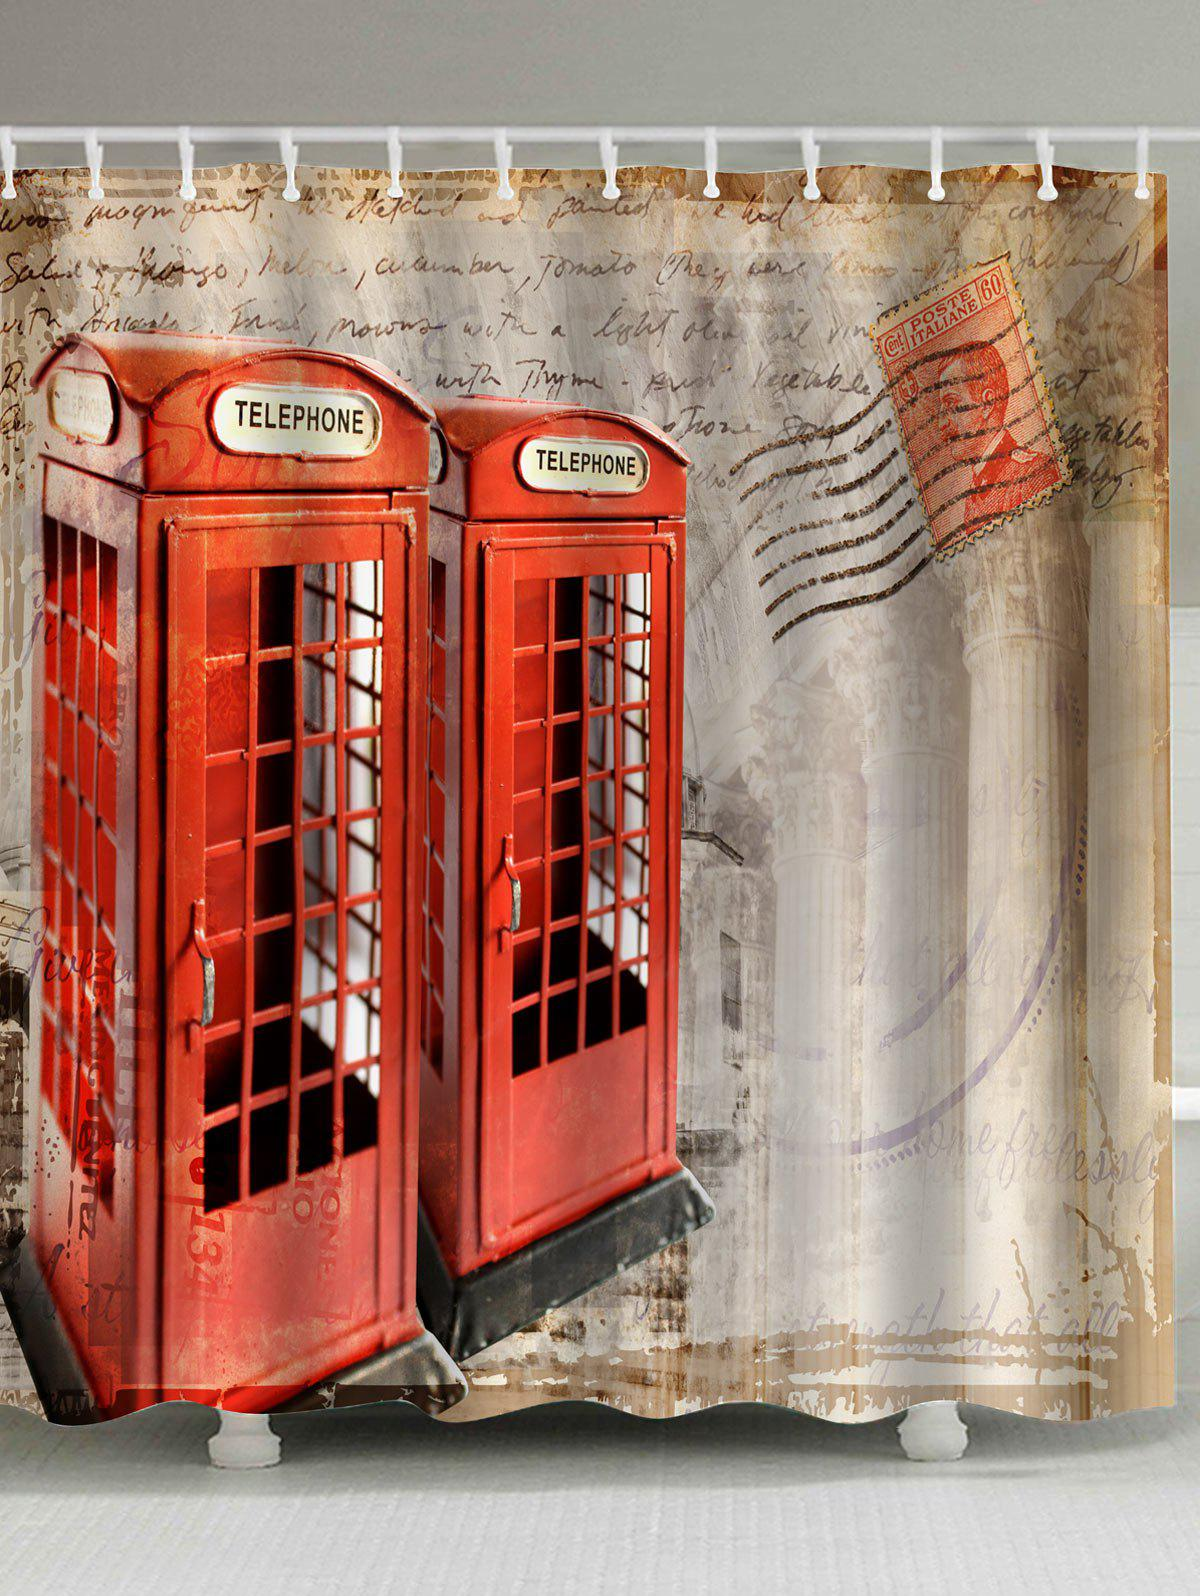 купить Telephone Booth Fabric Unique Shower Curtain недорого